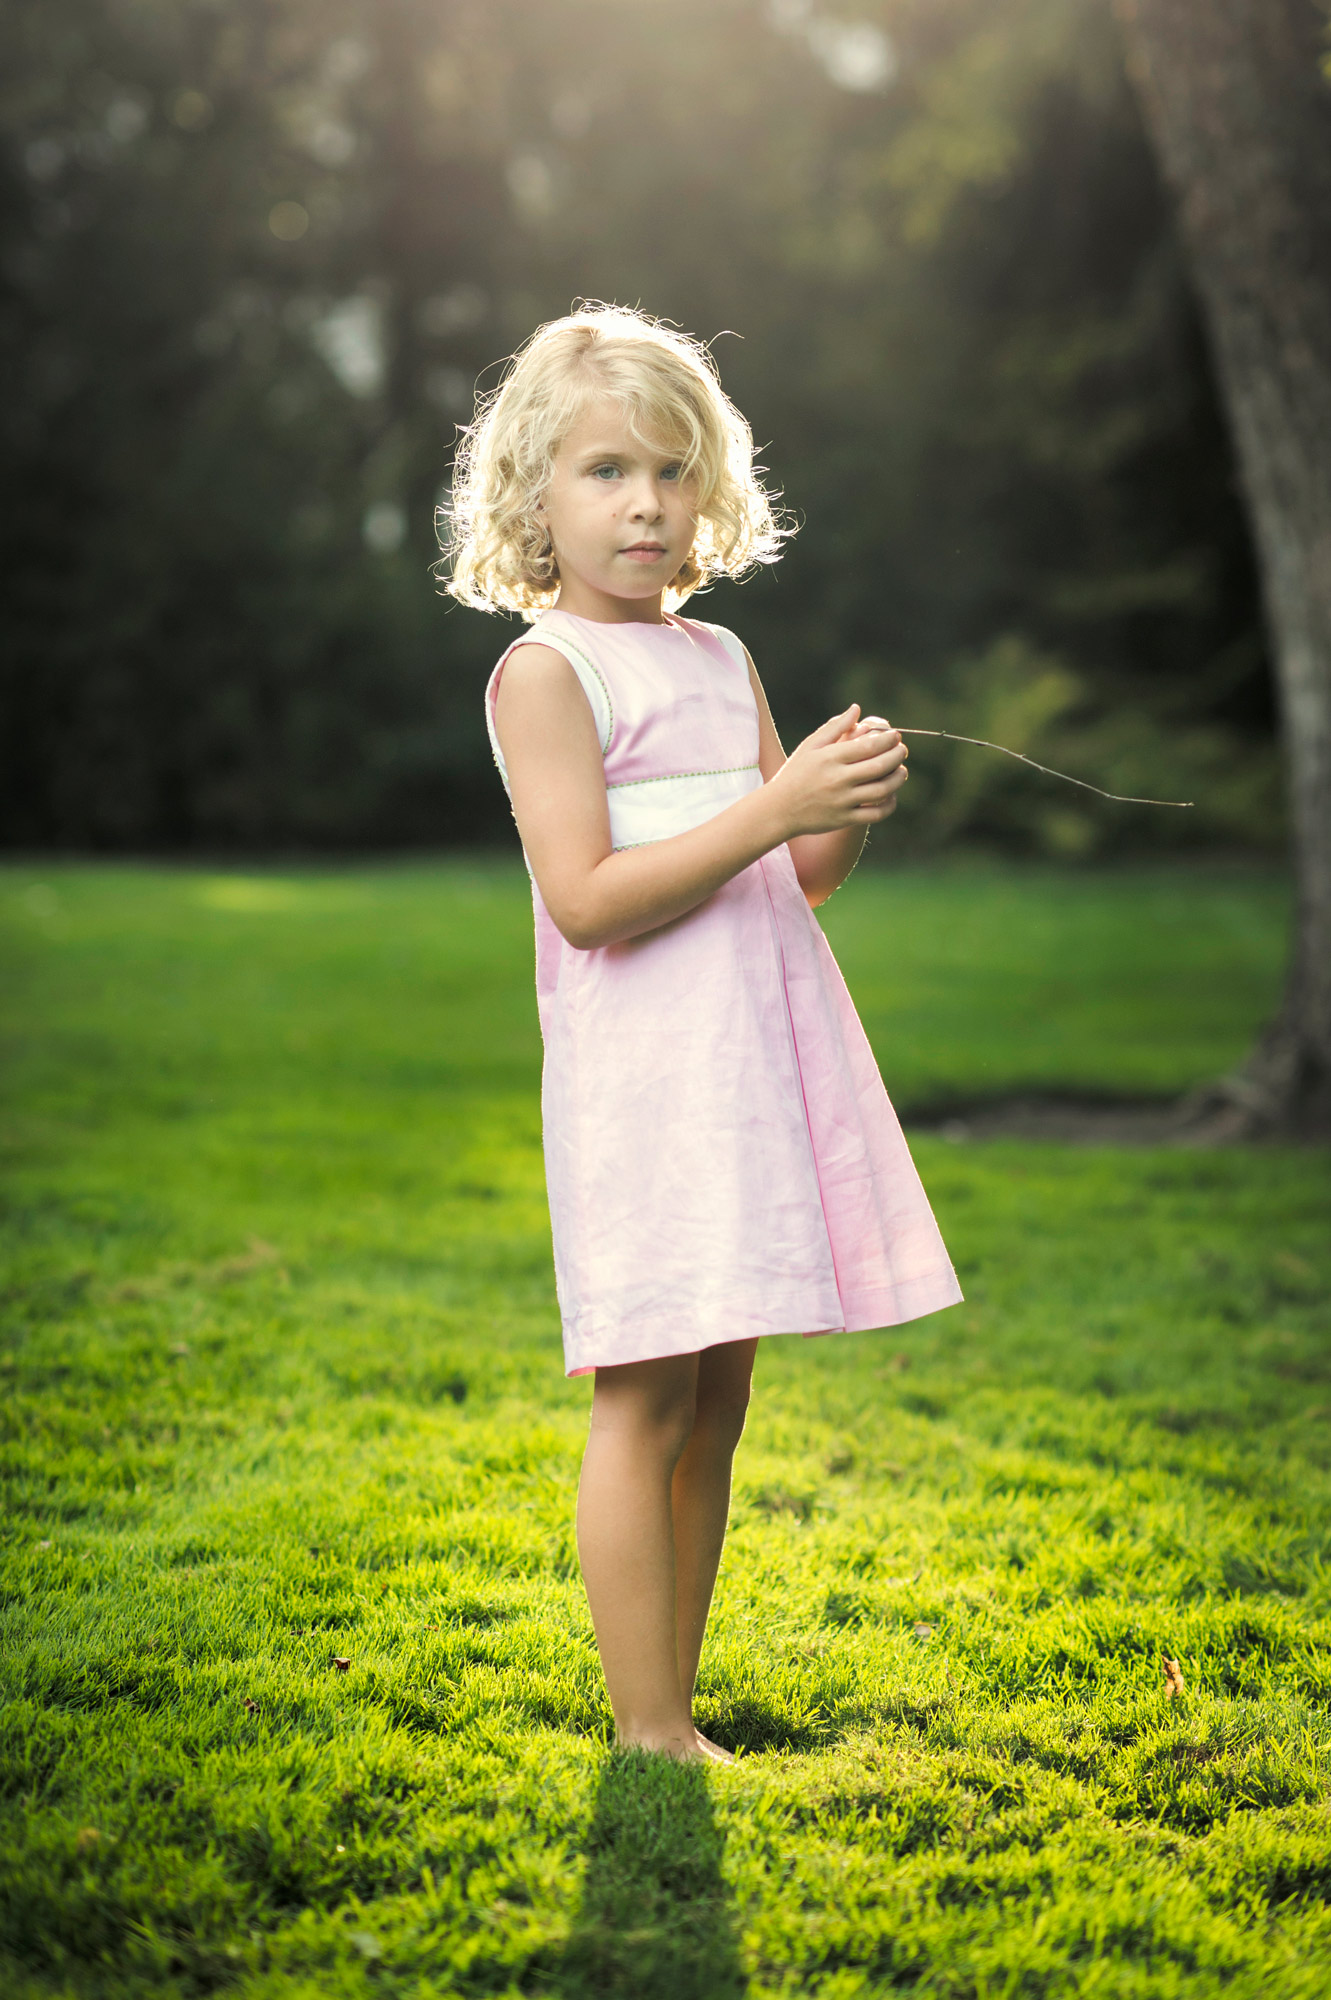 girl in pink dress holding stick